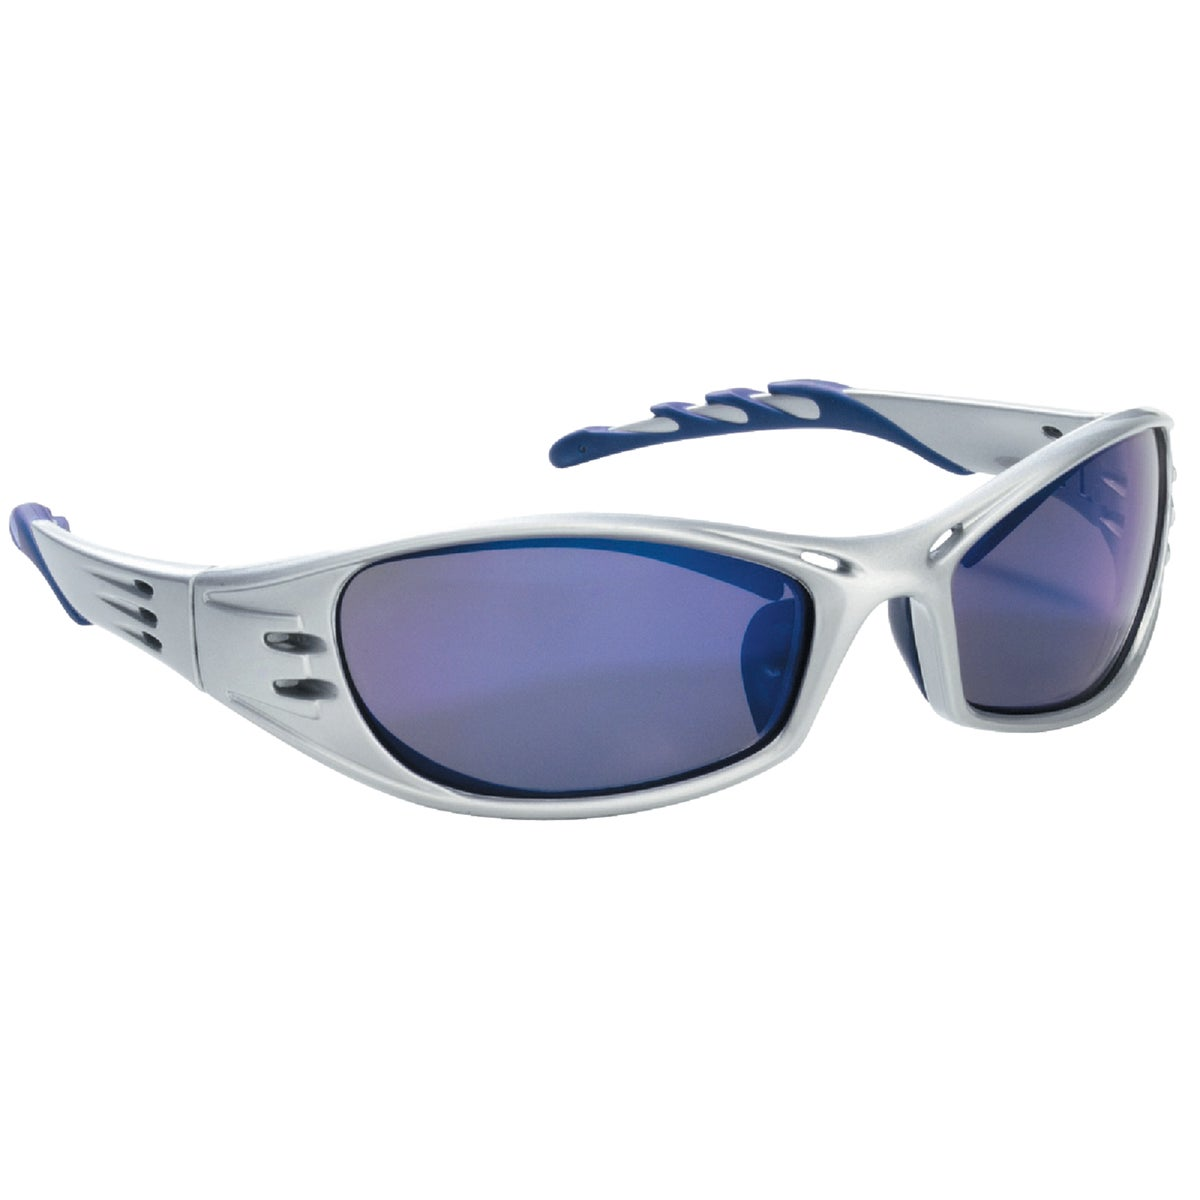 3M BLUE SAFETY SUNGLASSES 90988-80025